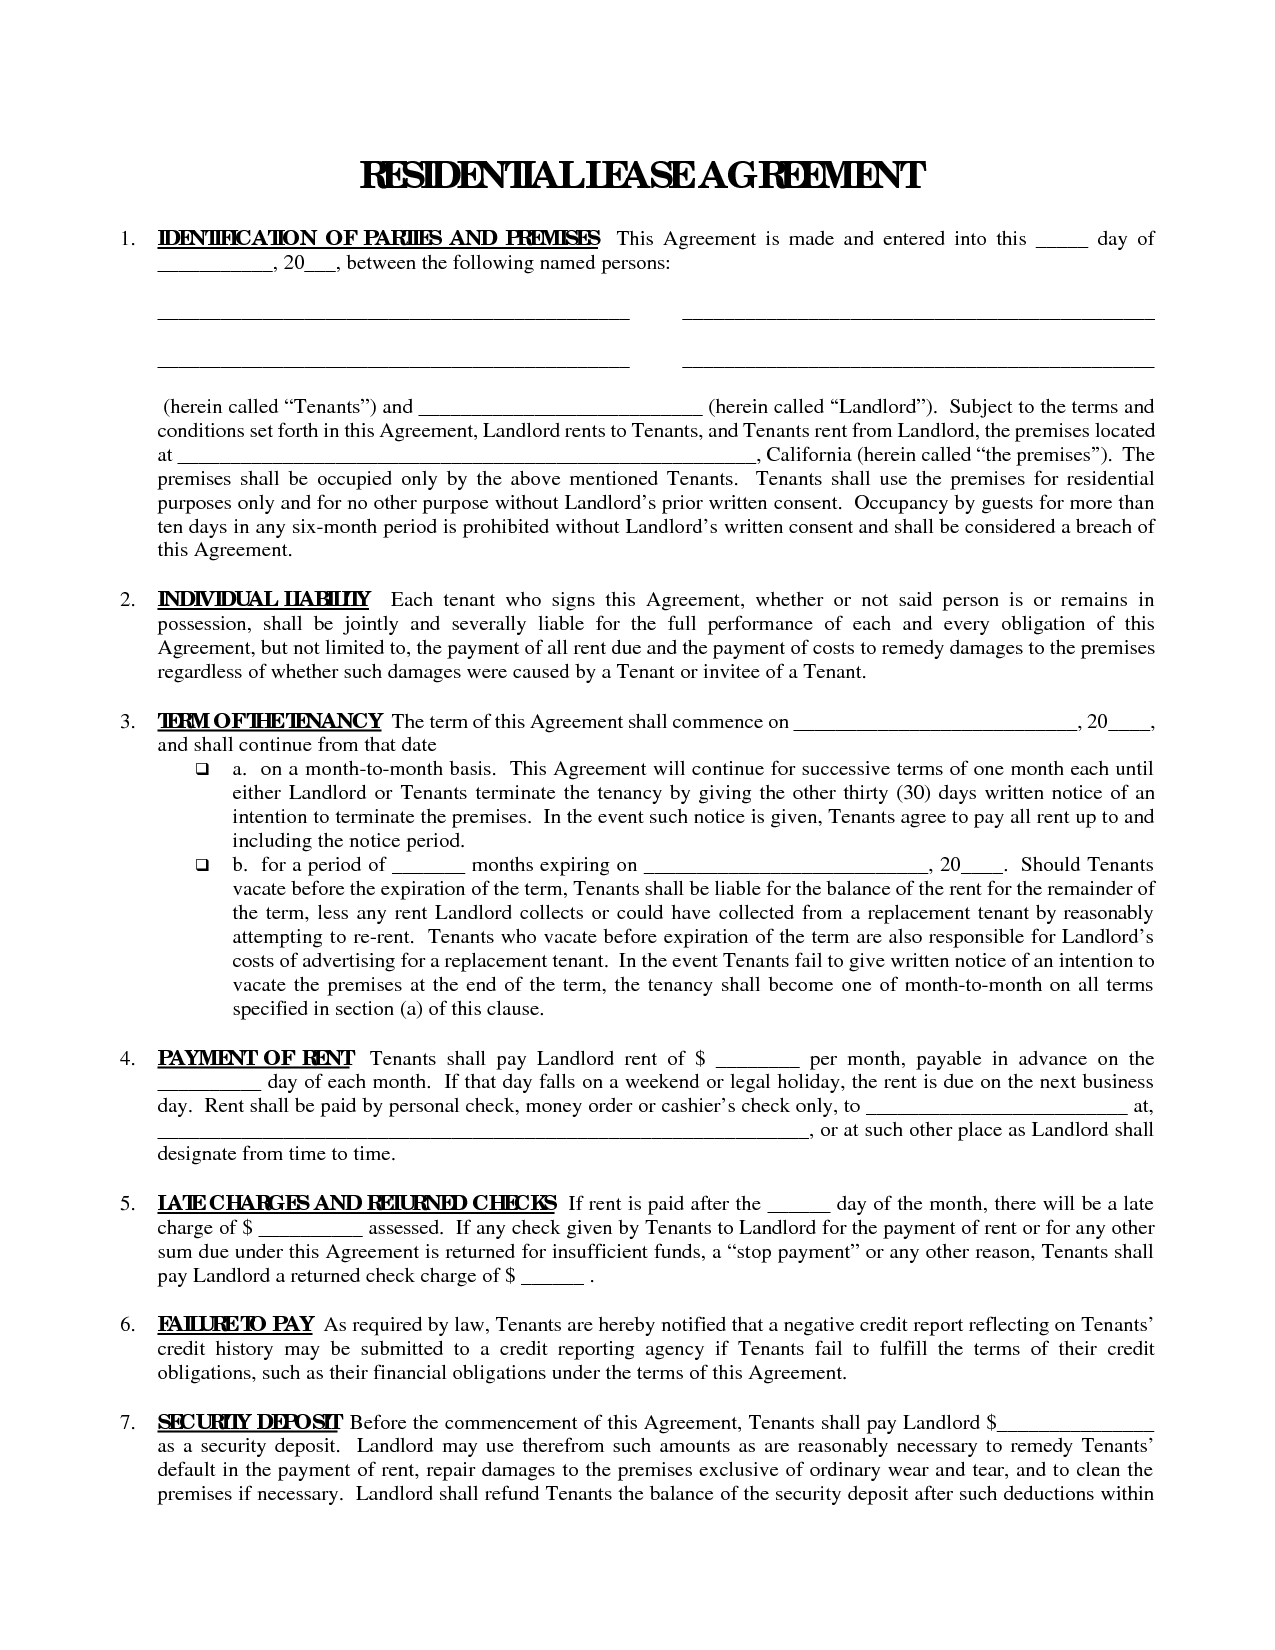 Delicieux Printable Residential Free House Lease Agreement | Residential Lease  Agreement: Real Estate Legal Form